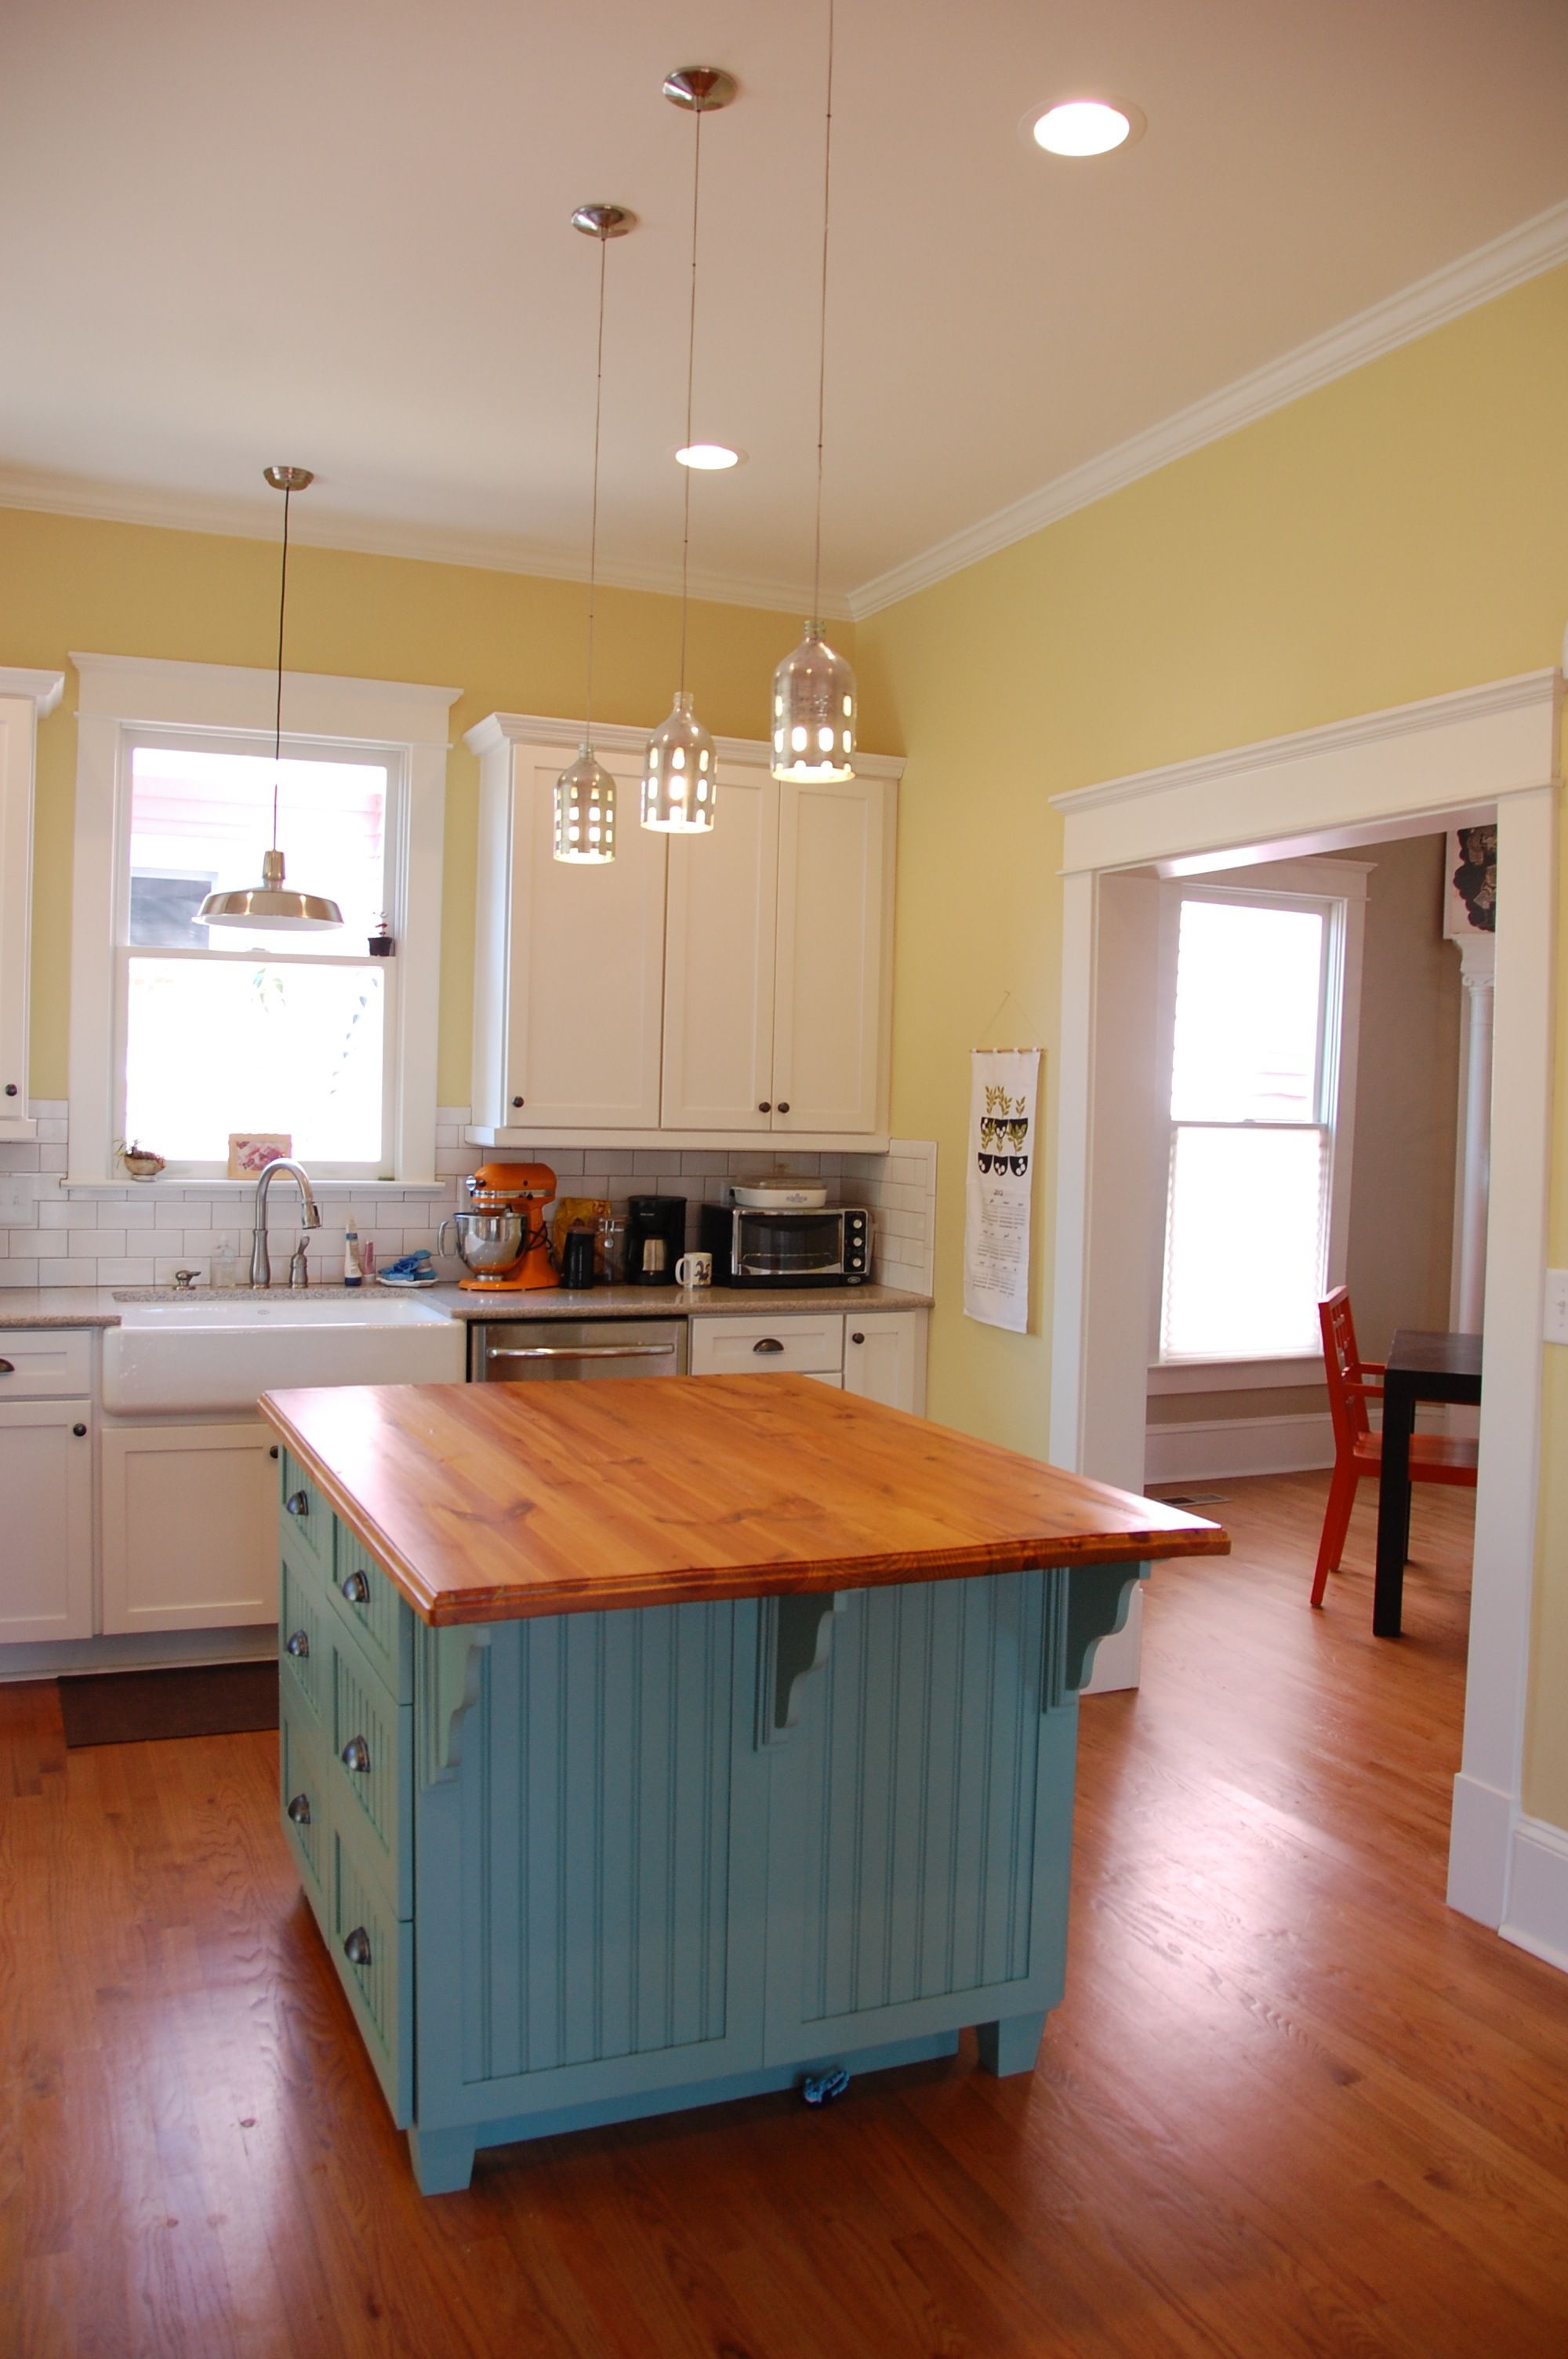 portfolio yellow kitchen walls eclectic kitchen on office wall colors 2021 id=83537